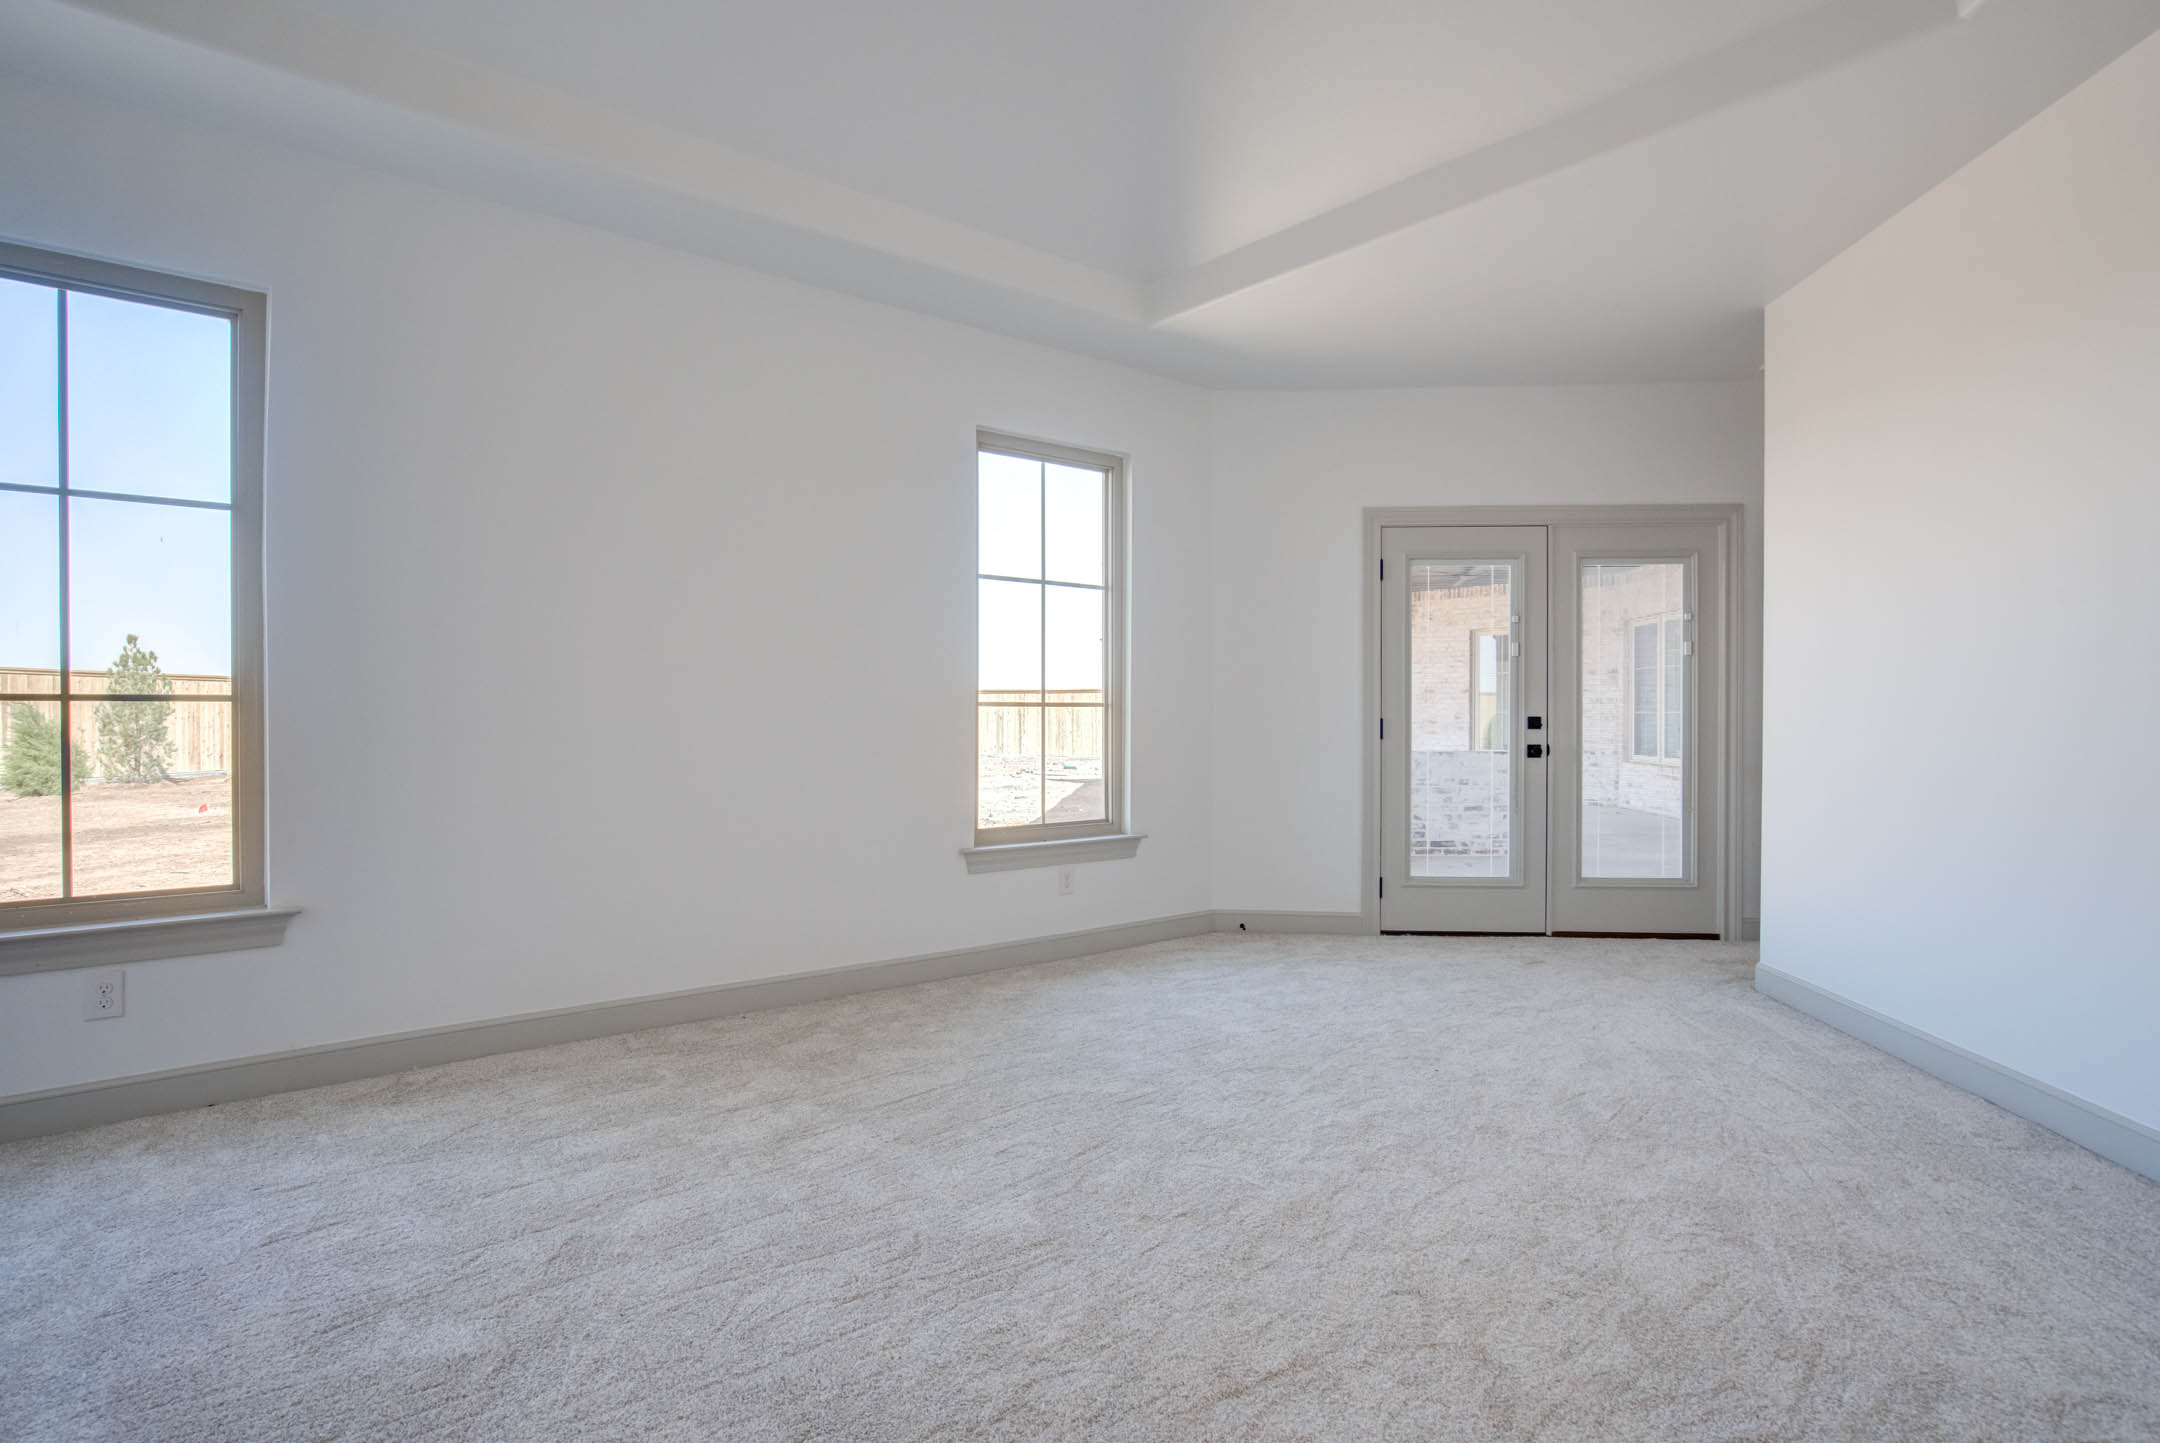 Spacious master bedroom in new home for sale near Lubbock, Texas.